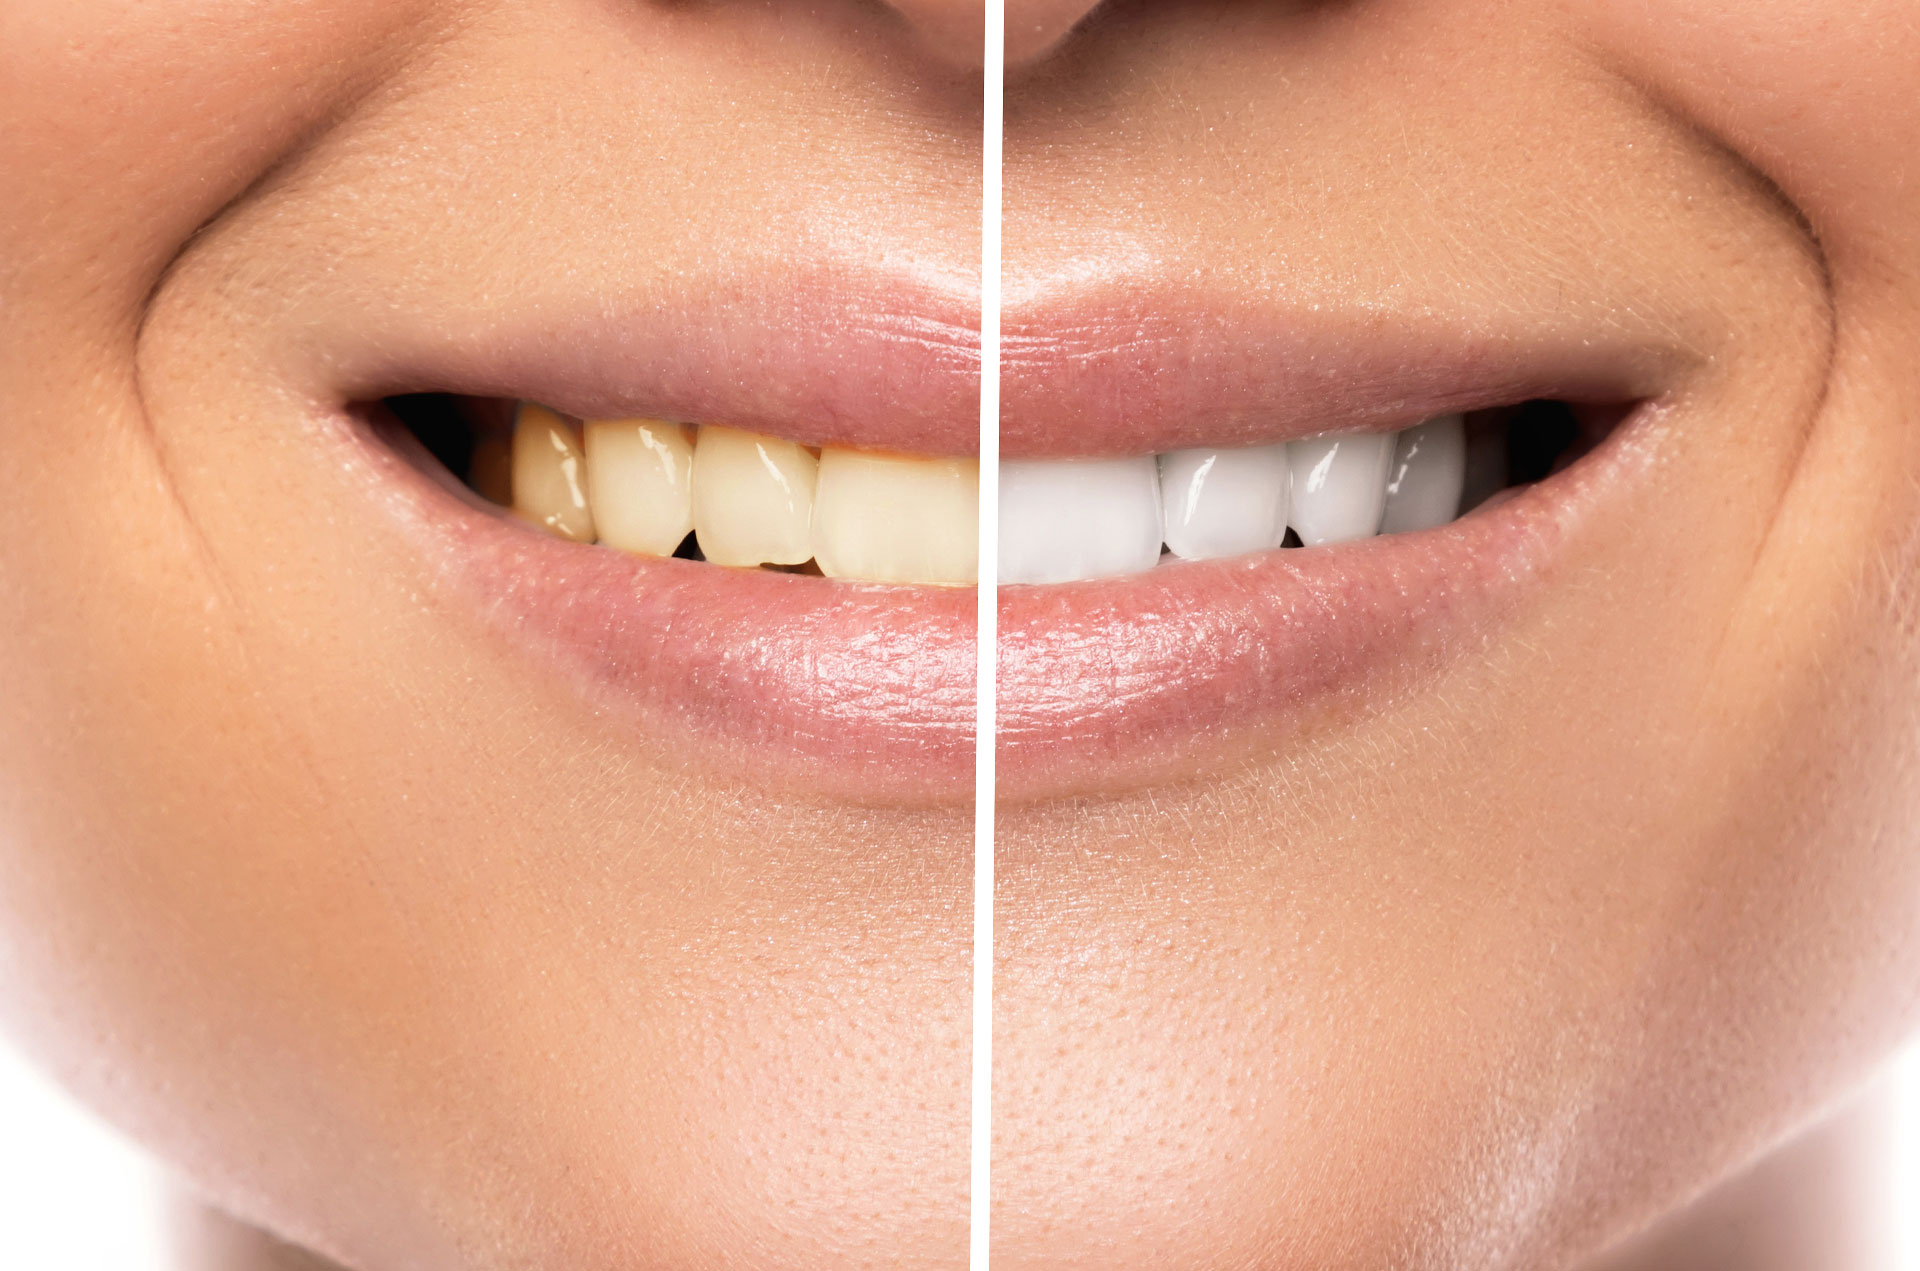 TEETH WHITENING: HOW TO WHITEN YOUR TEETH QUICKLY